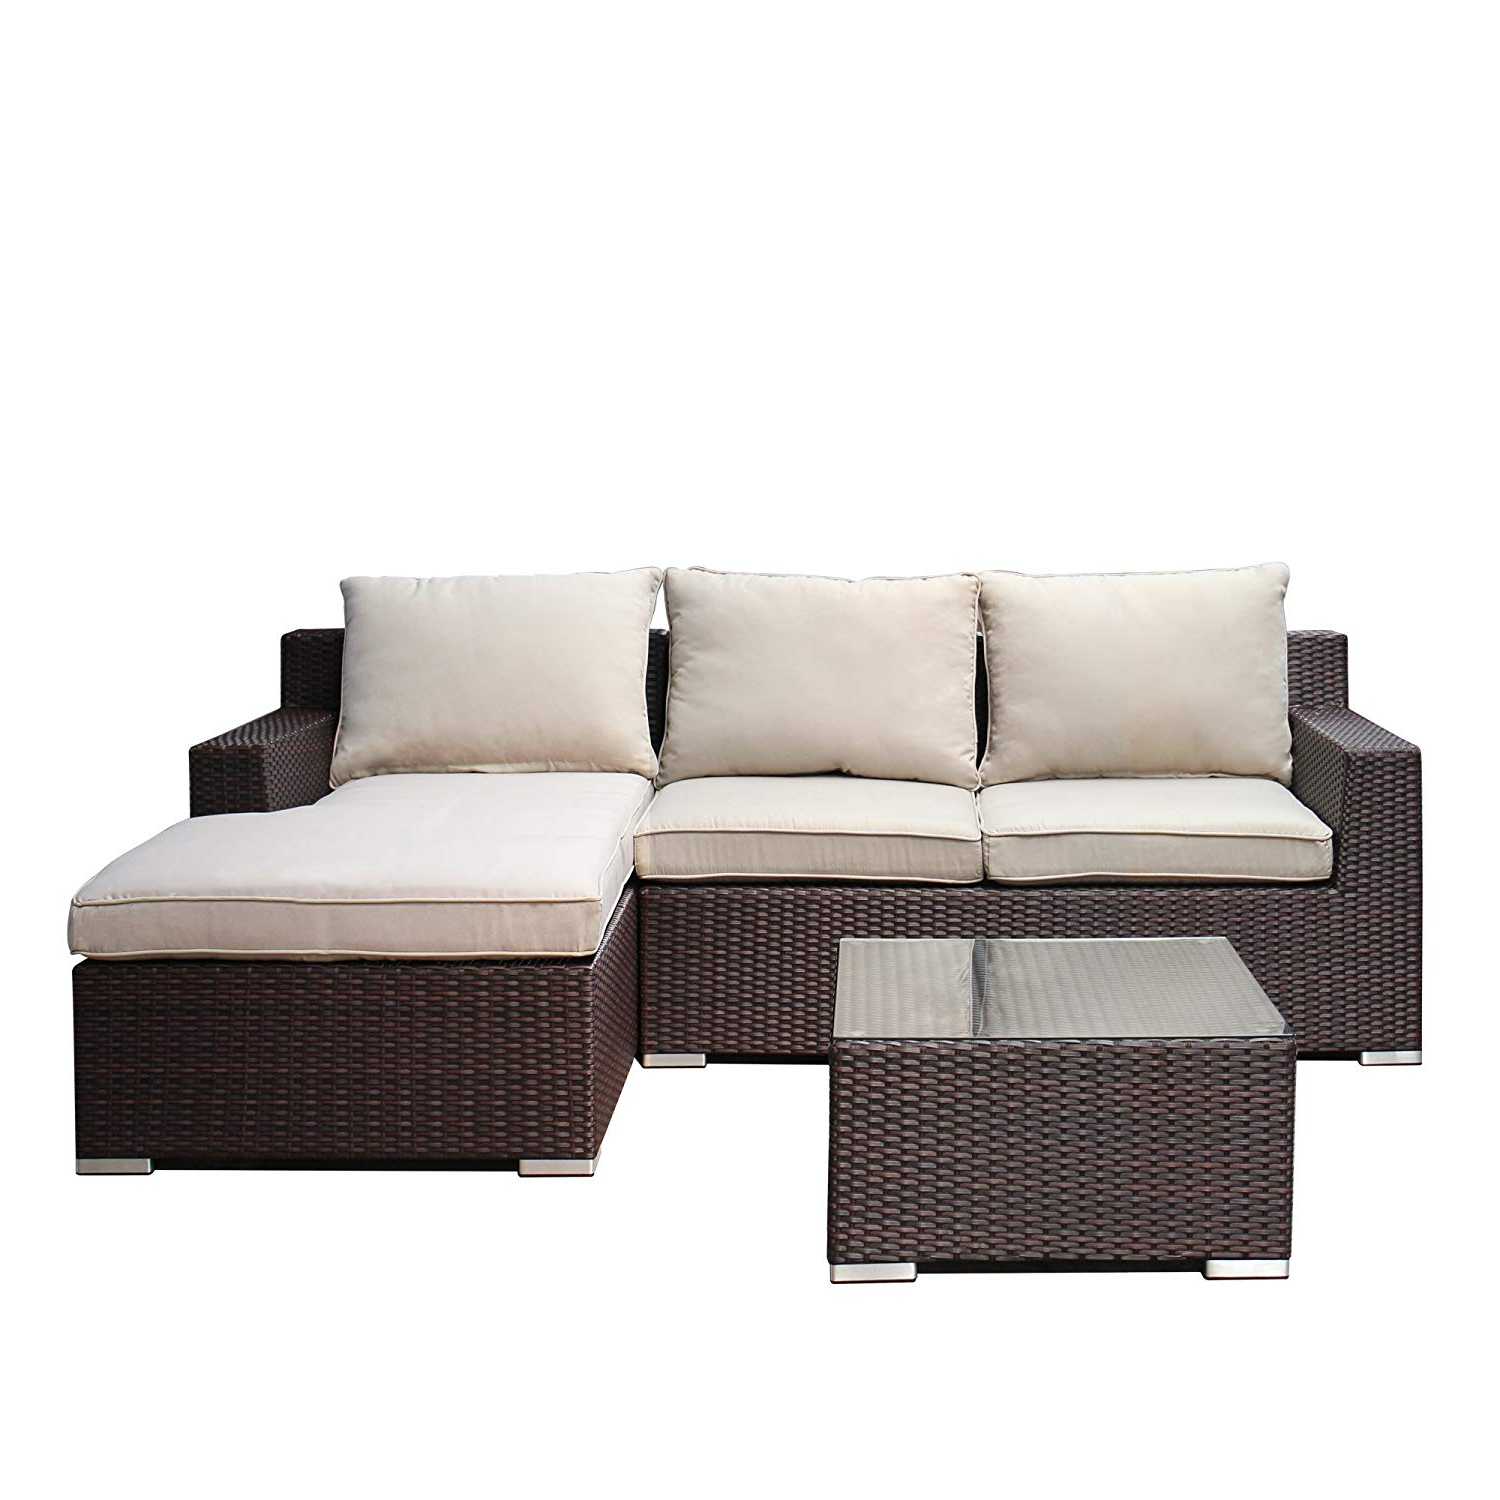 Shore Alumunium Outdoor 3 Piece Chaise Lounger Sets Throughout Widely Used Cheap Cream Lounge Furniture, Find Cream Lounge Furniture (View 20 of 25)